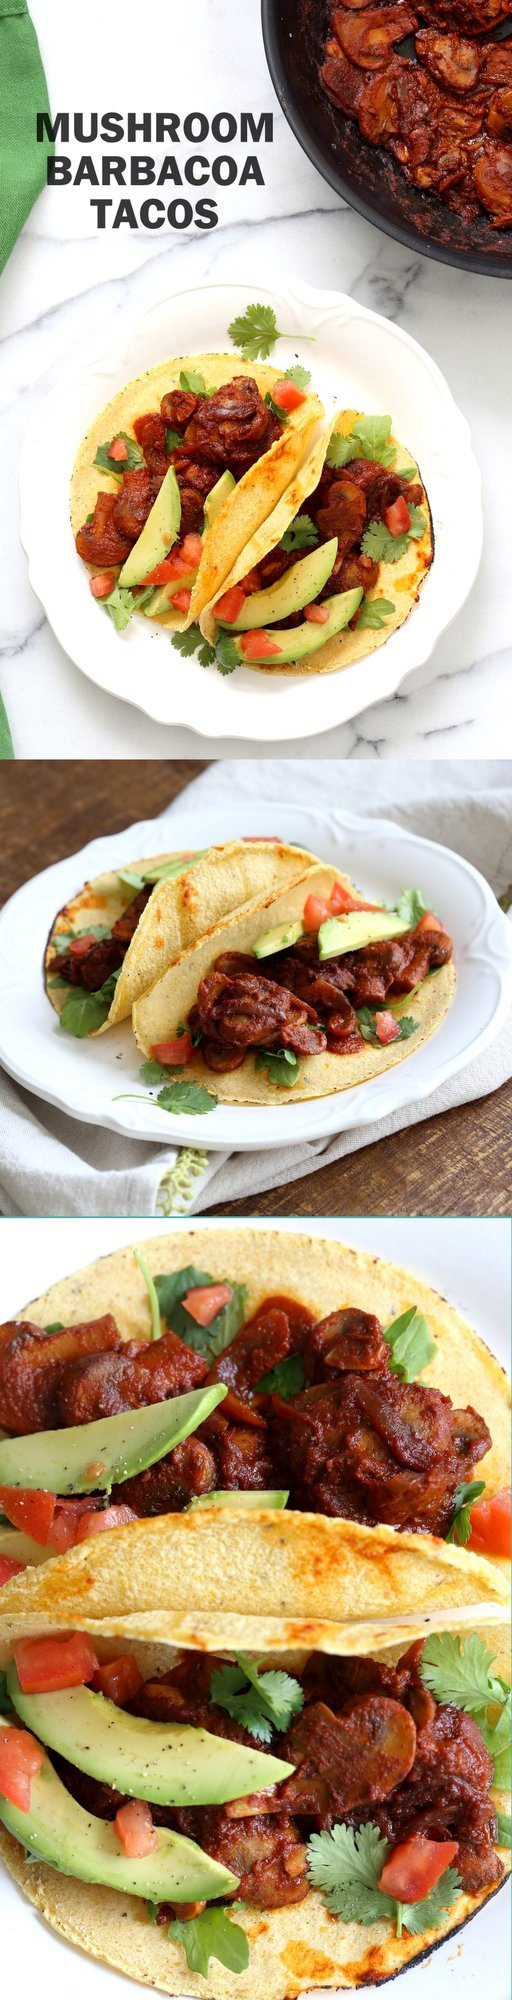 Vegan Barbacoa Mushroom Tacos. These saucy Barbacoa Tacos are super easy and versatile. Use the from scratch chile sauce with beans, lentils or other shredded vegetables for variation. Vegan Barbacoa Recipe. #Glutenfree #Nutfree #soyfree #Recipe #veganricha | VeganRicha.com